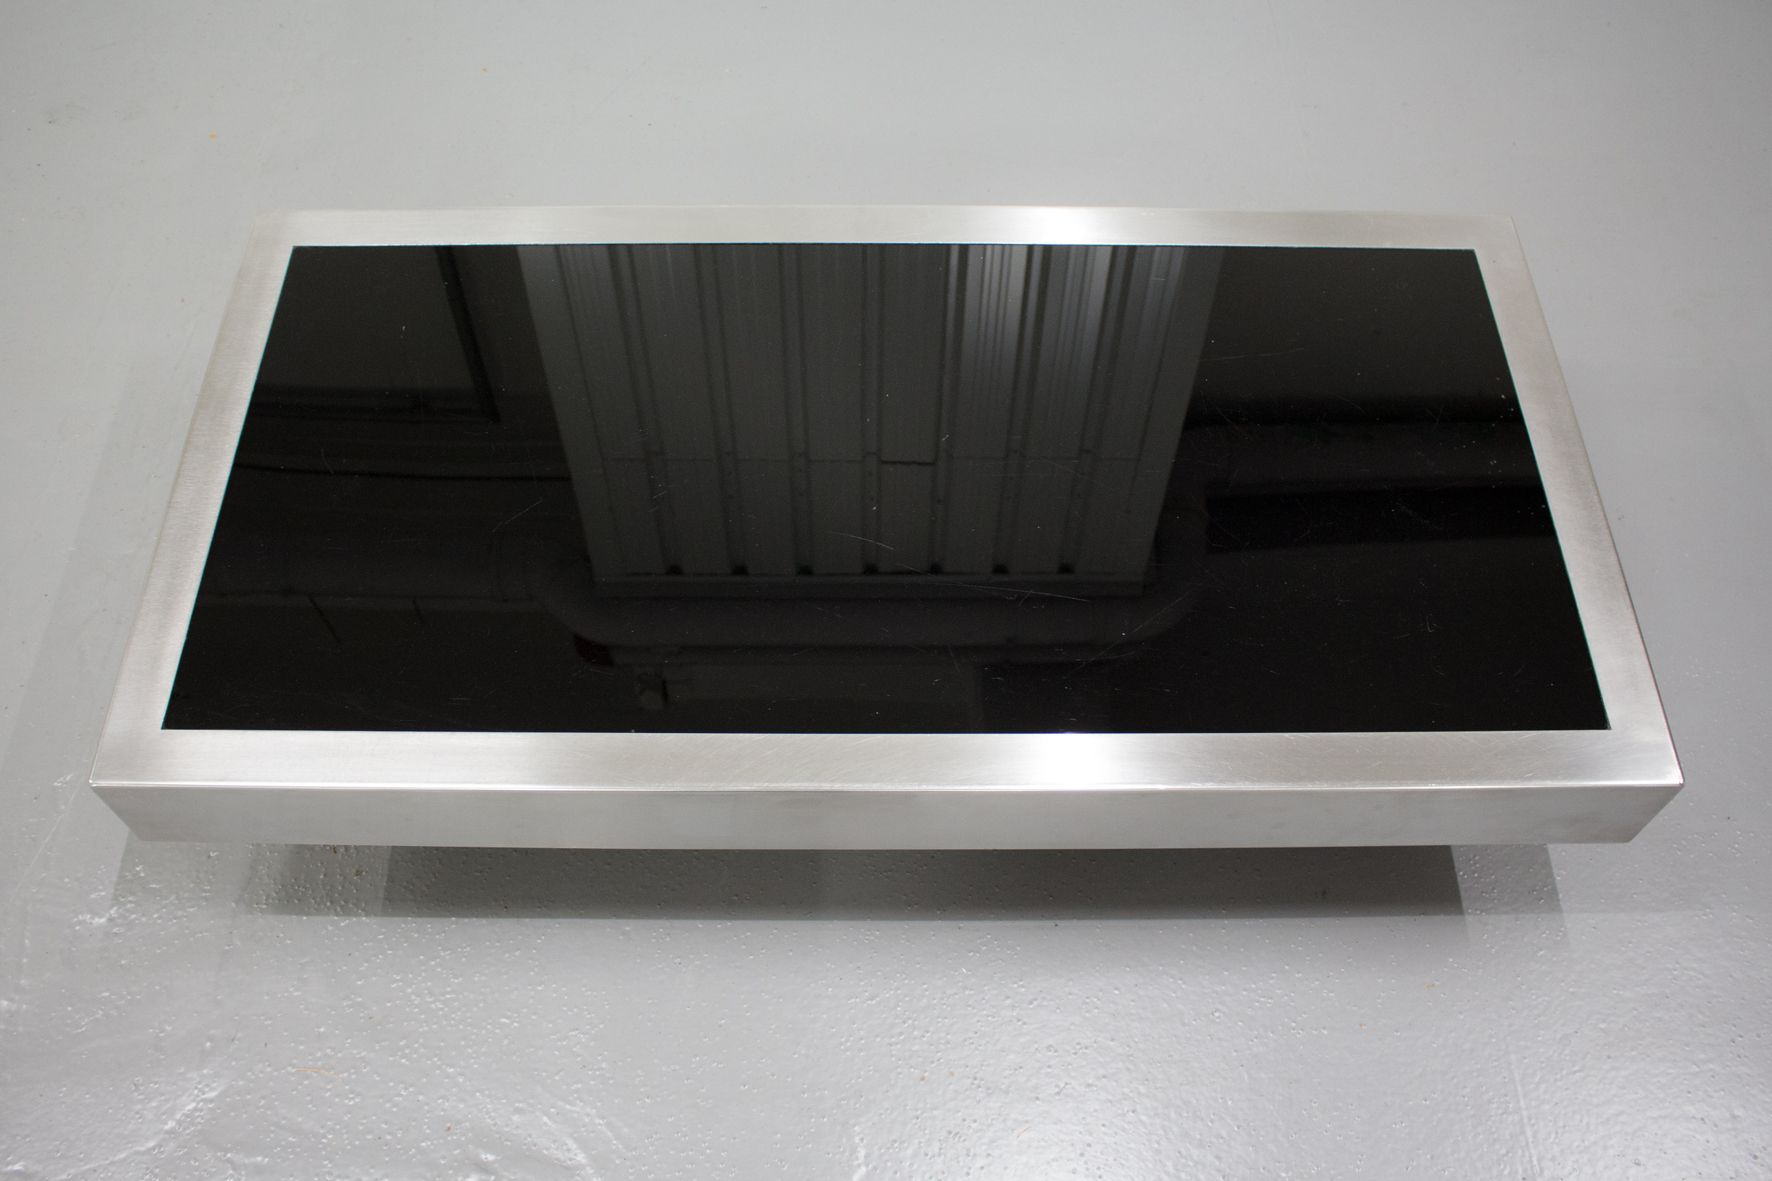 Black Glass Chrome Coffee Table By Willy Rizzo 1970s For Sale At Pamono